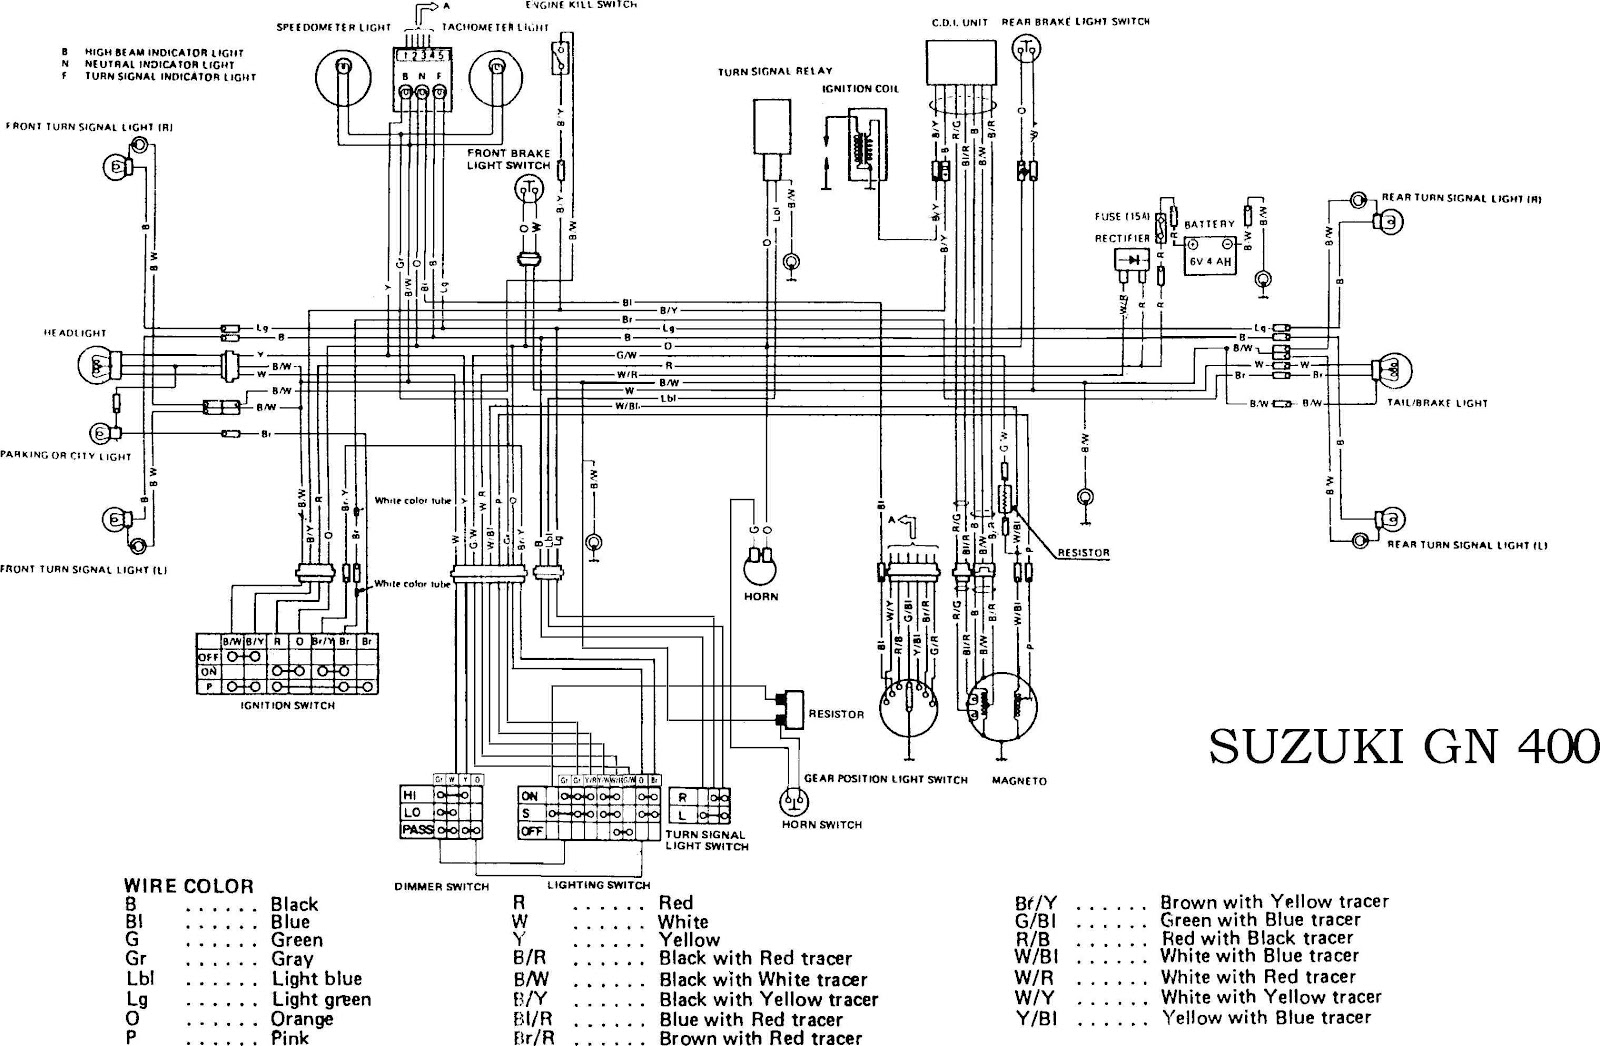 Ktm Wiring Diagram furthermore RepairGuideContent moreover Wire diagram as well 2013 Ktm 300 Xc W Wiring Diagram as well Dirt Bike Gear Diagram. on ktm ignition system wiring diagrams